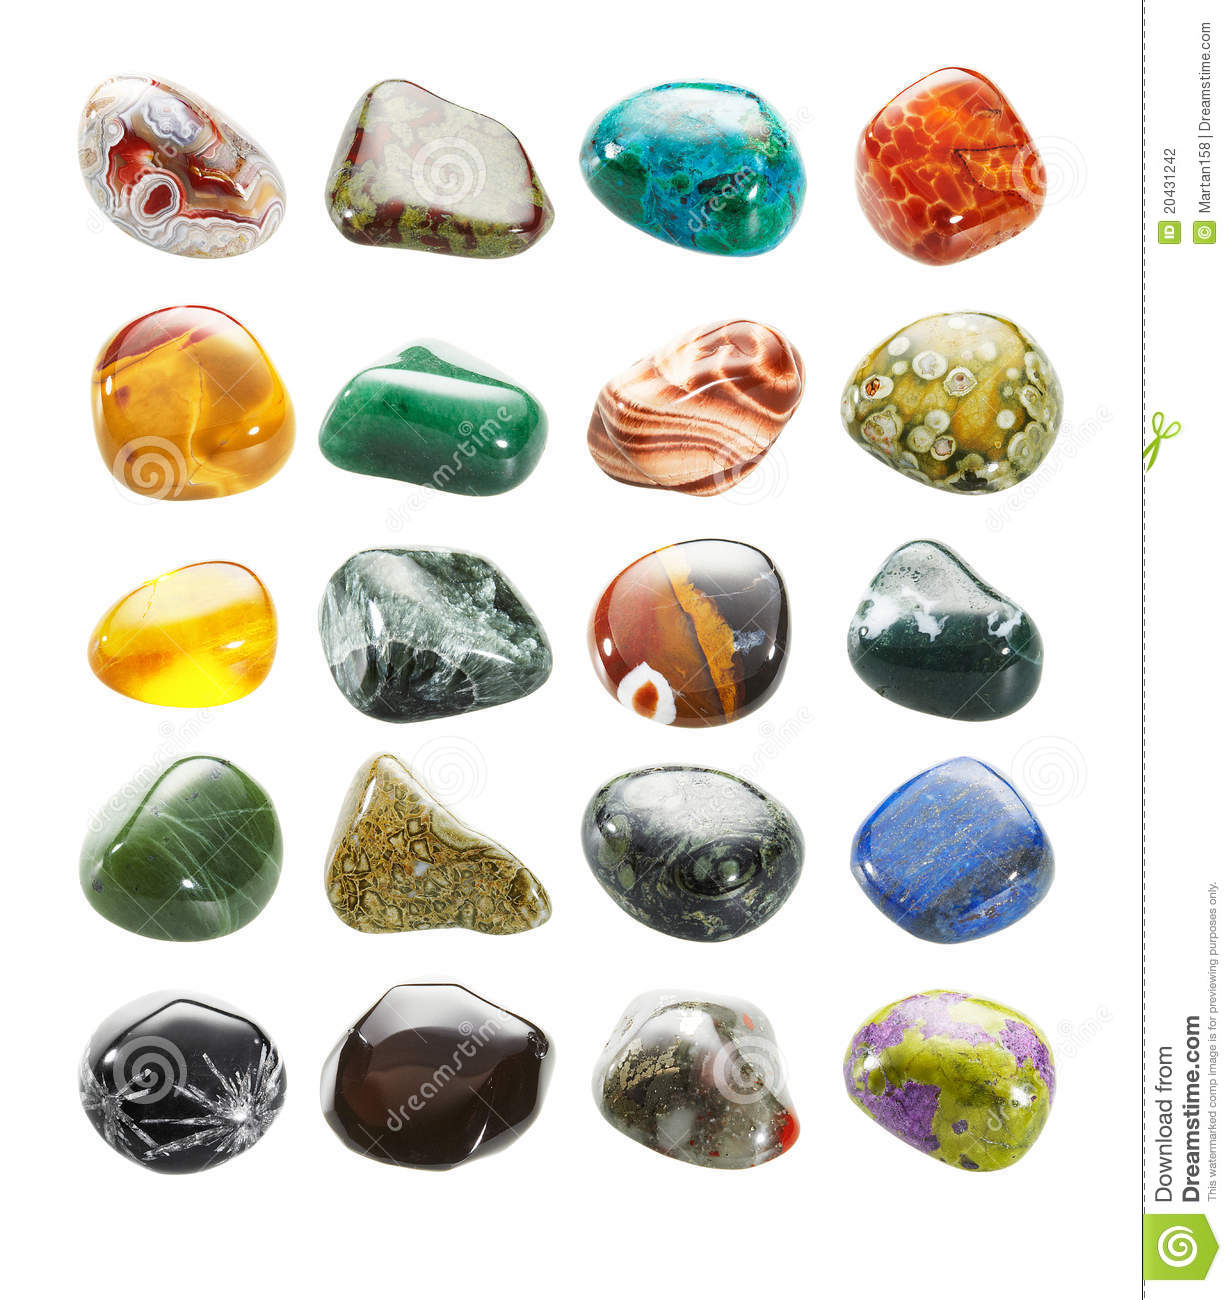 small tumbled stones collection stock photo image 20431242